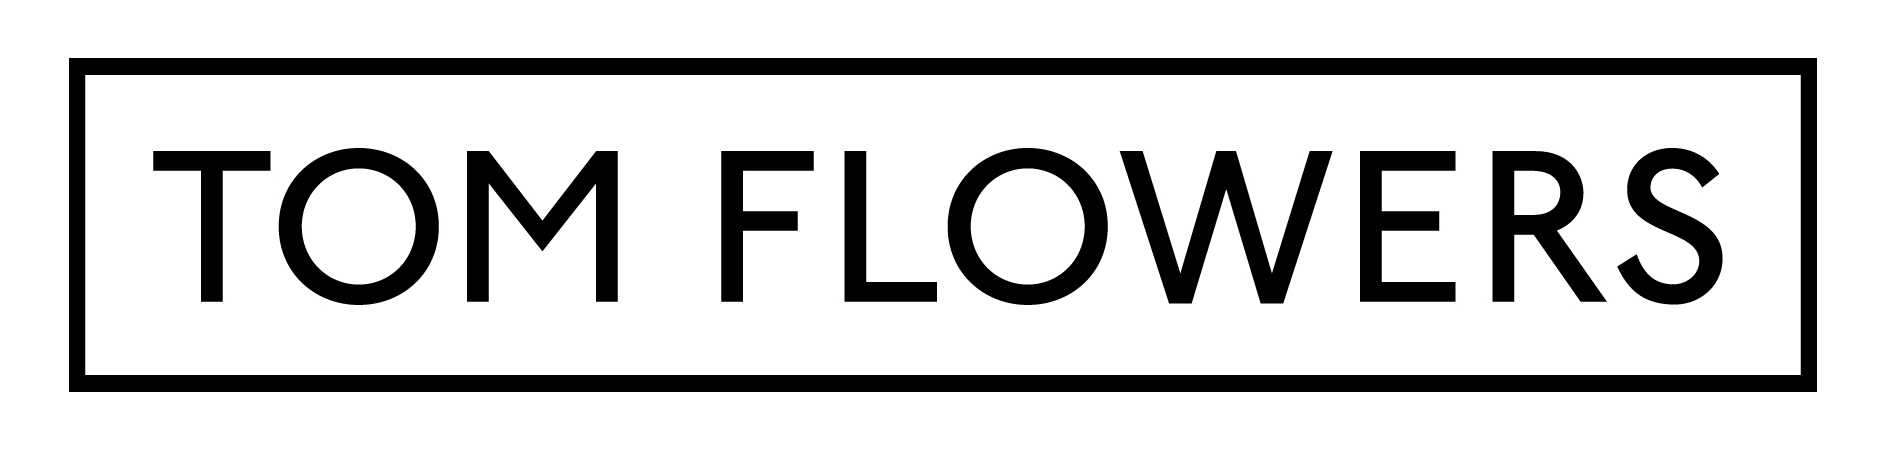 tomflowers